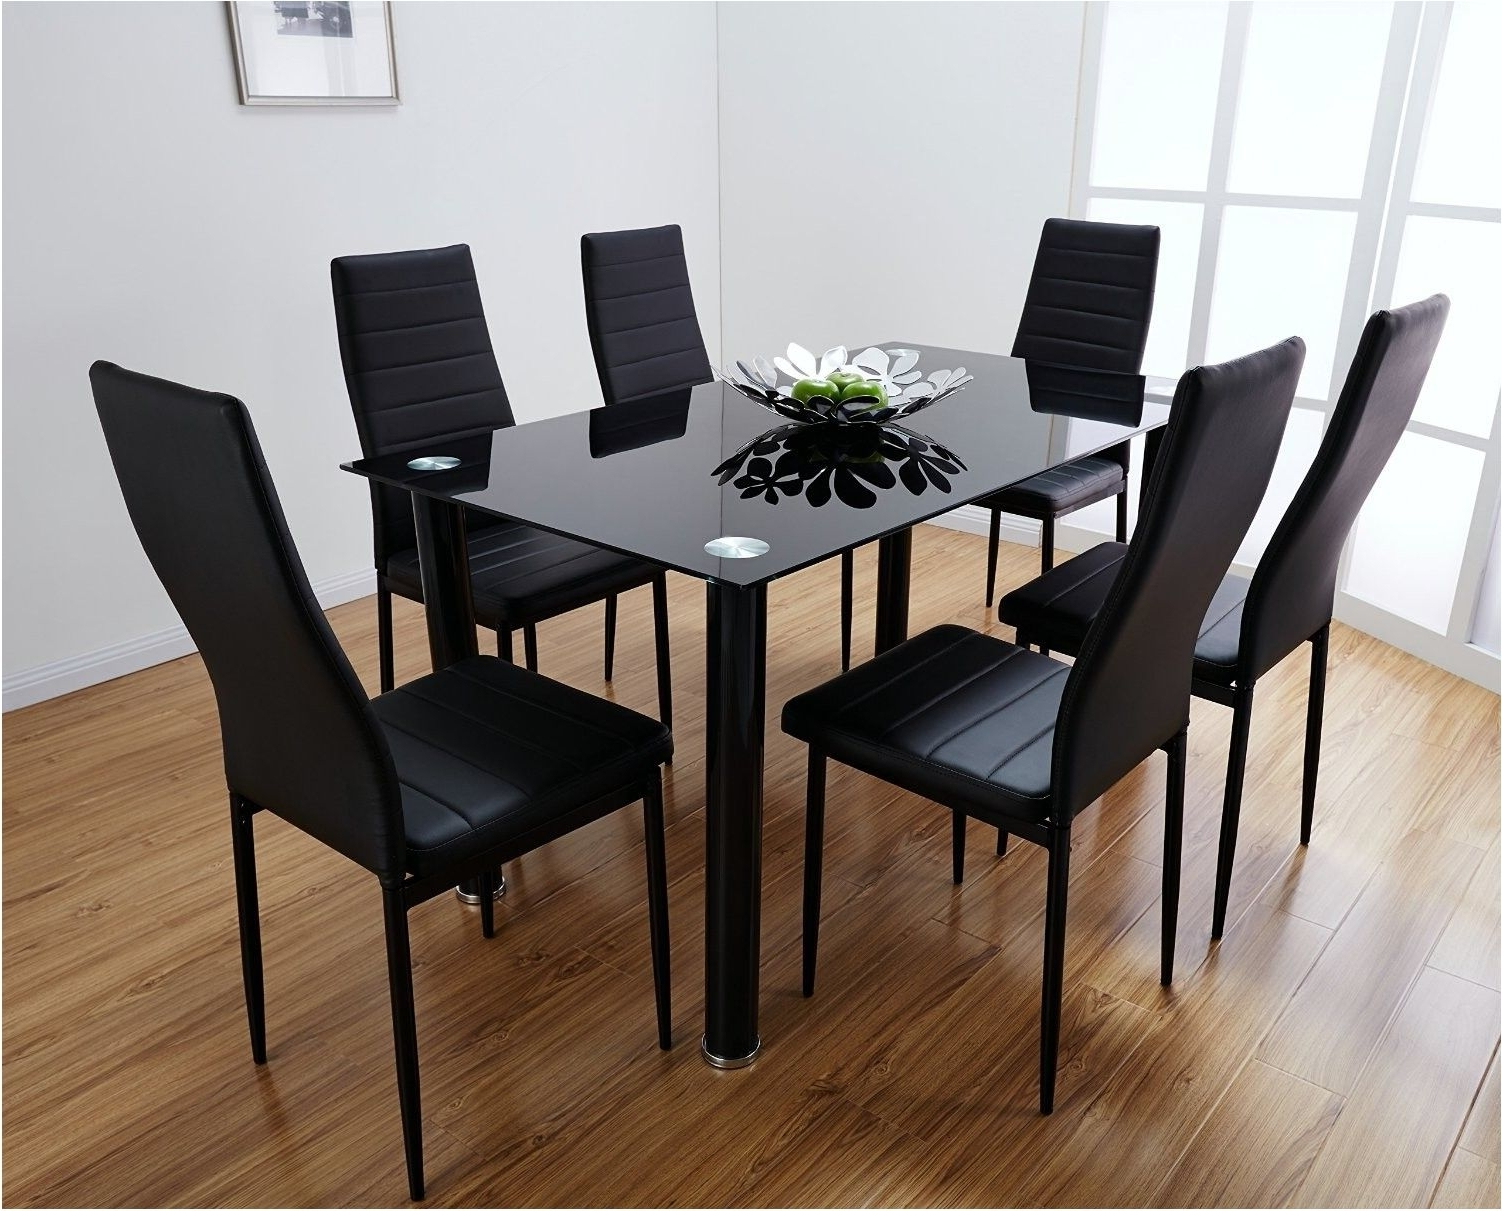 Most Recent Glass Dining Tables With 6 Chairs Throughout Delightful Extending Black Glass Dining Table And 6 Chairs Set Table (Gallery 21 of 25)